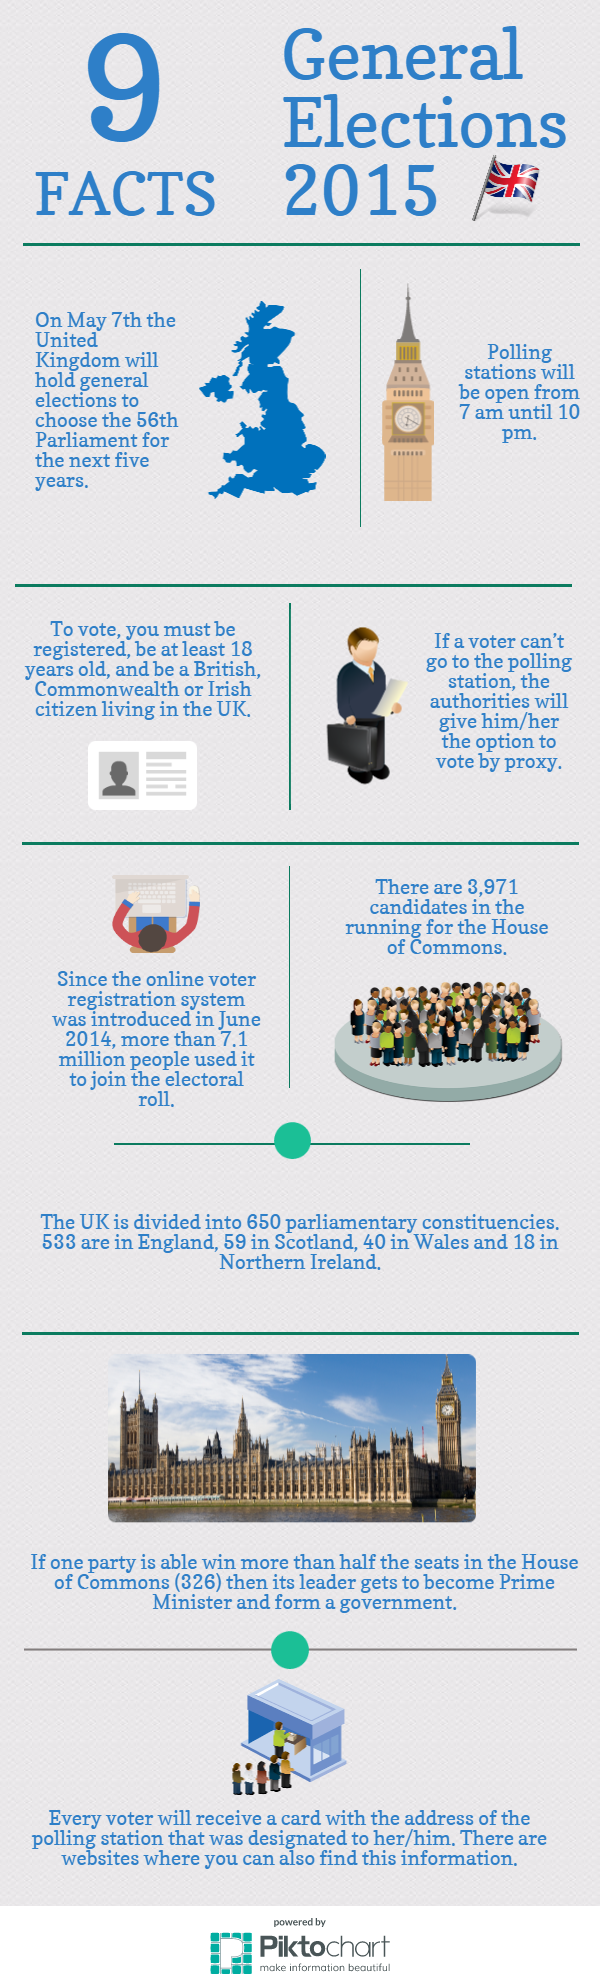 2015 UK General Elections